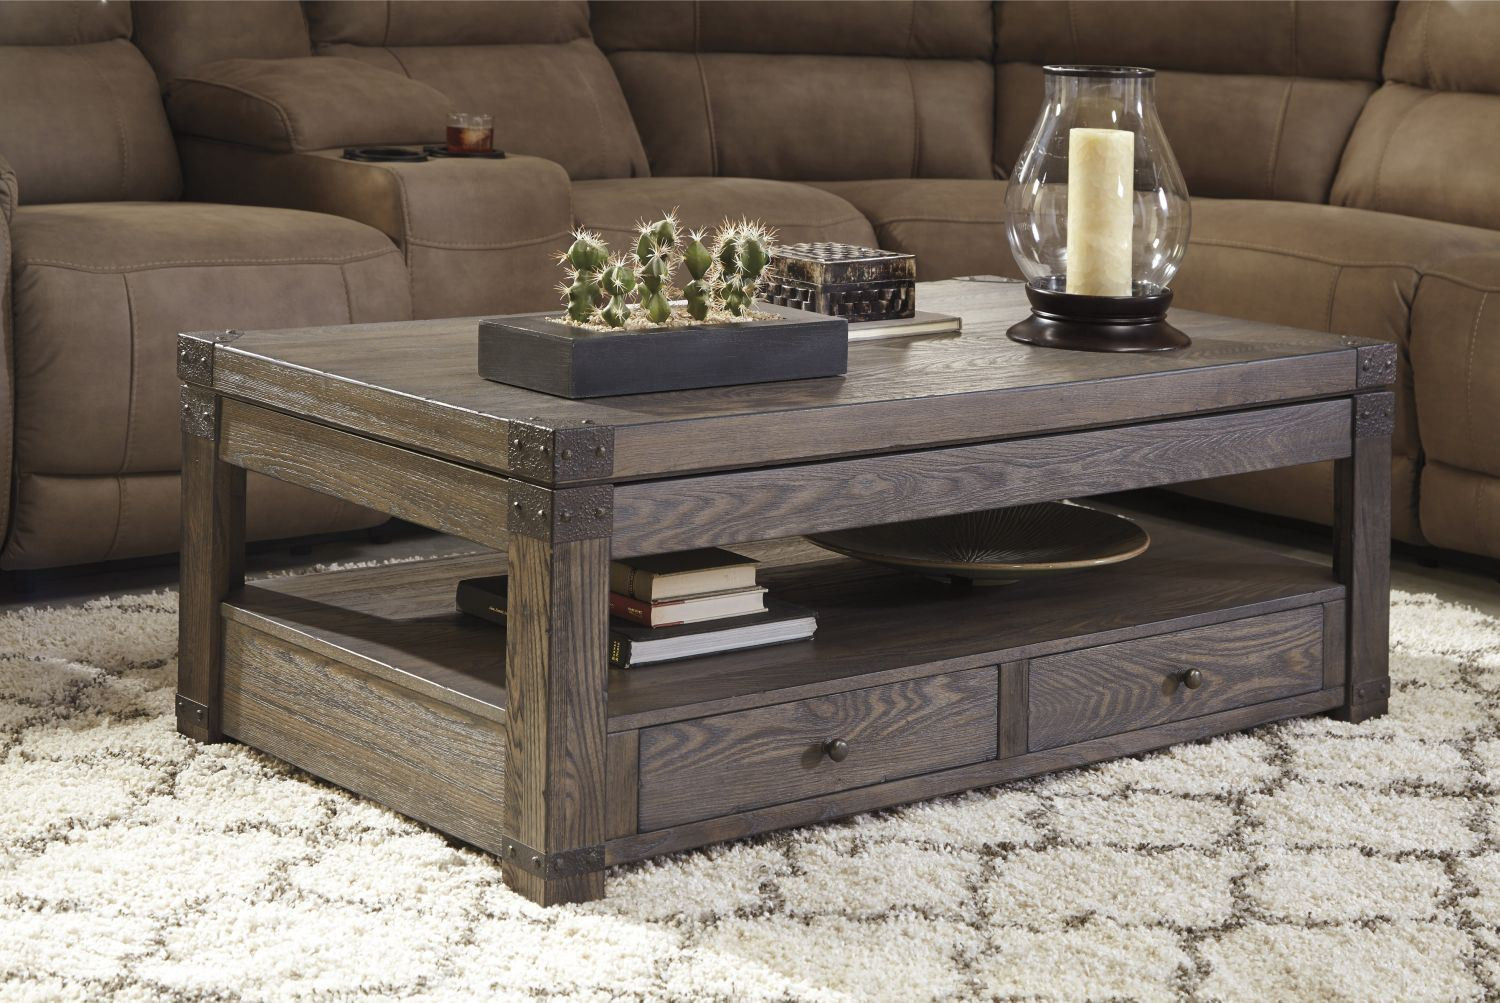 Best ideas about Ashley Coffee Table . Save or Pin Burladen Rect Lift Top COFFEE Table D T846 9 Now.